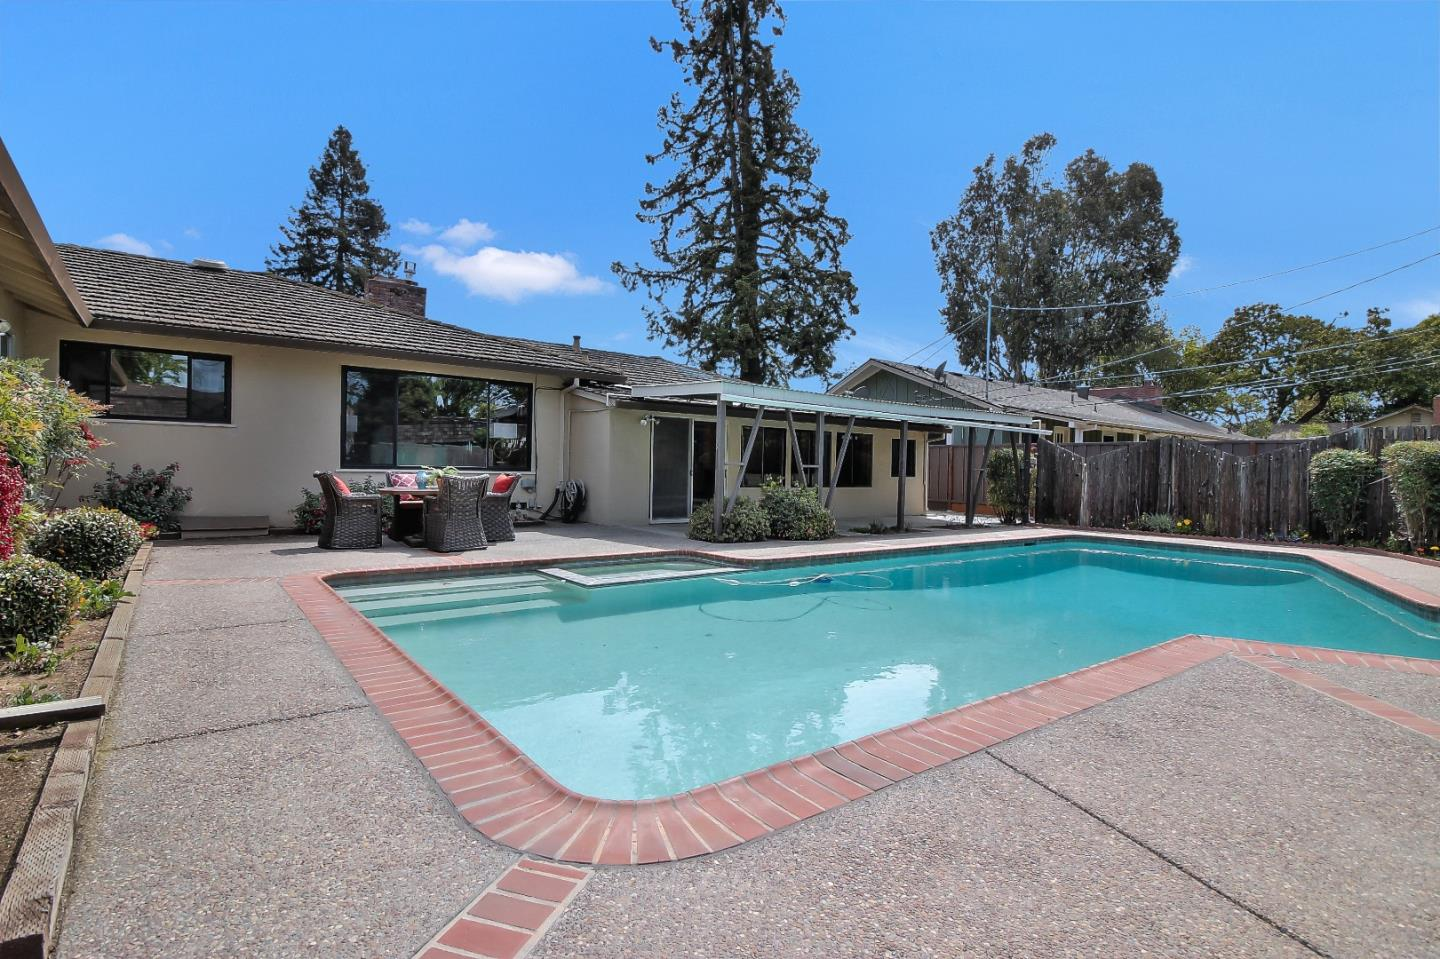 Additional photo for property listing at 1315 Arroyo Seco Dr  CAMPBELL, CALIFORNIA 95008